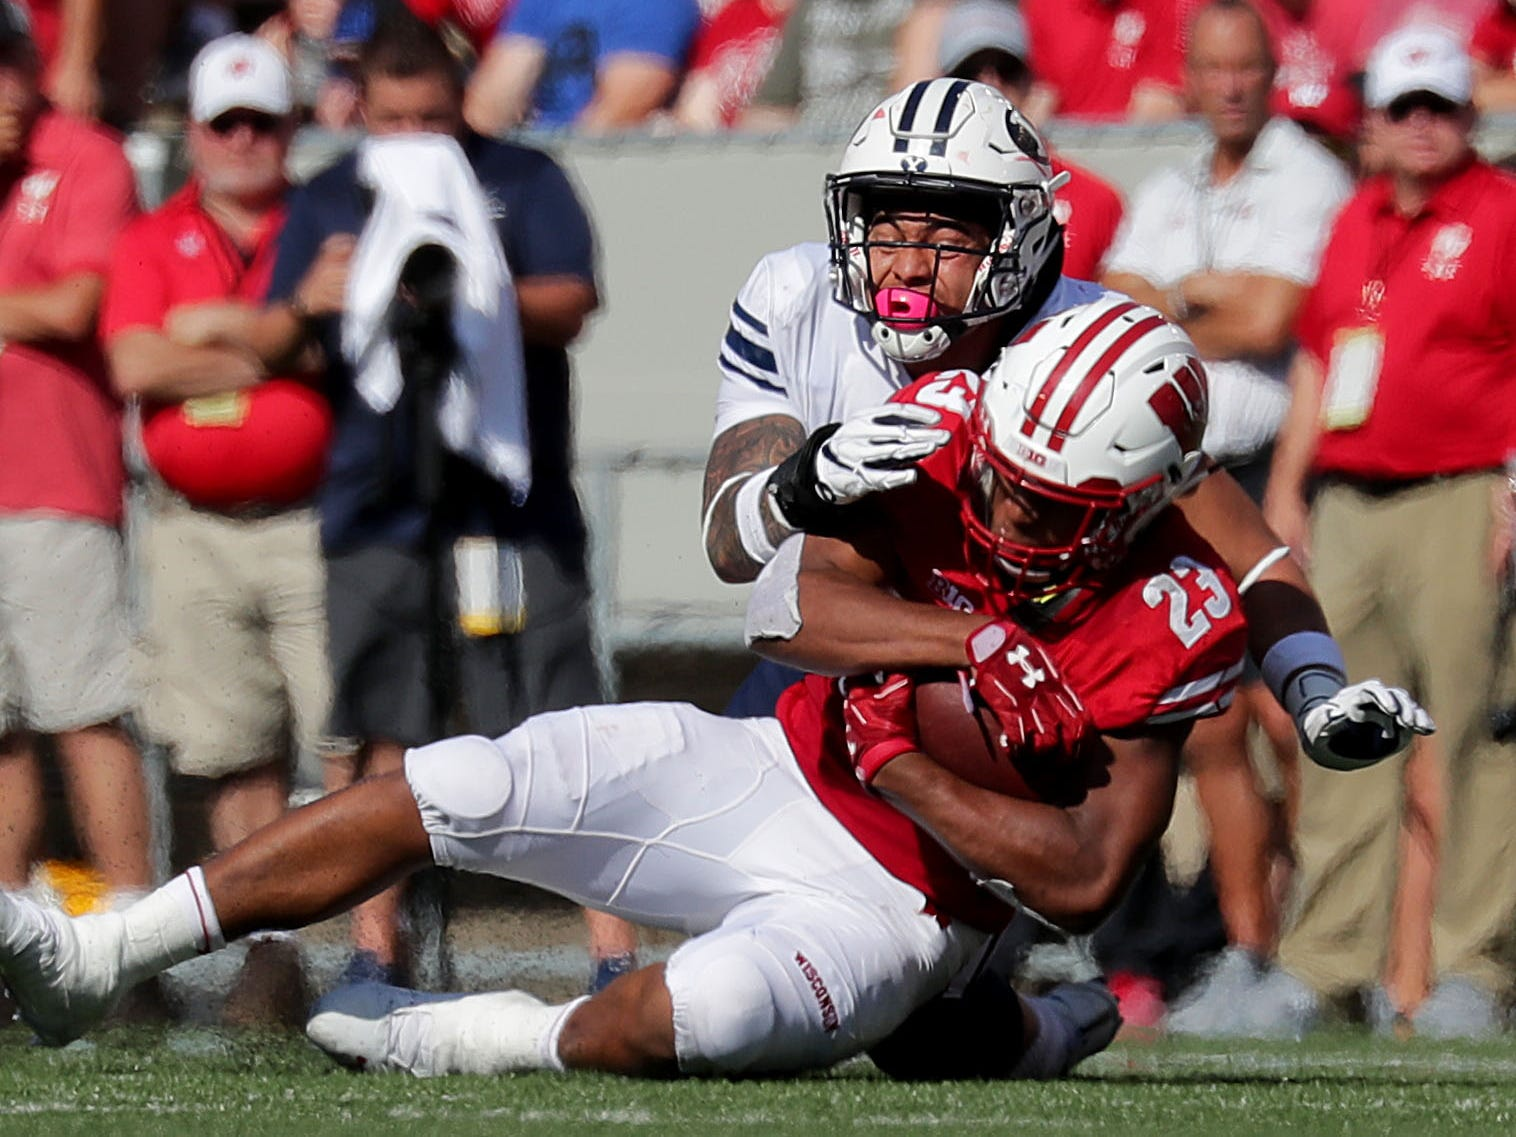 Wisconsin Badgers running back Jonathan Taylor is stopped for a loss by Brigham Young linebacker Sione Takitaki during the first half.